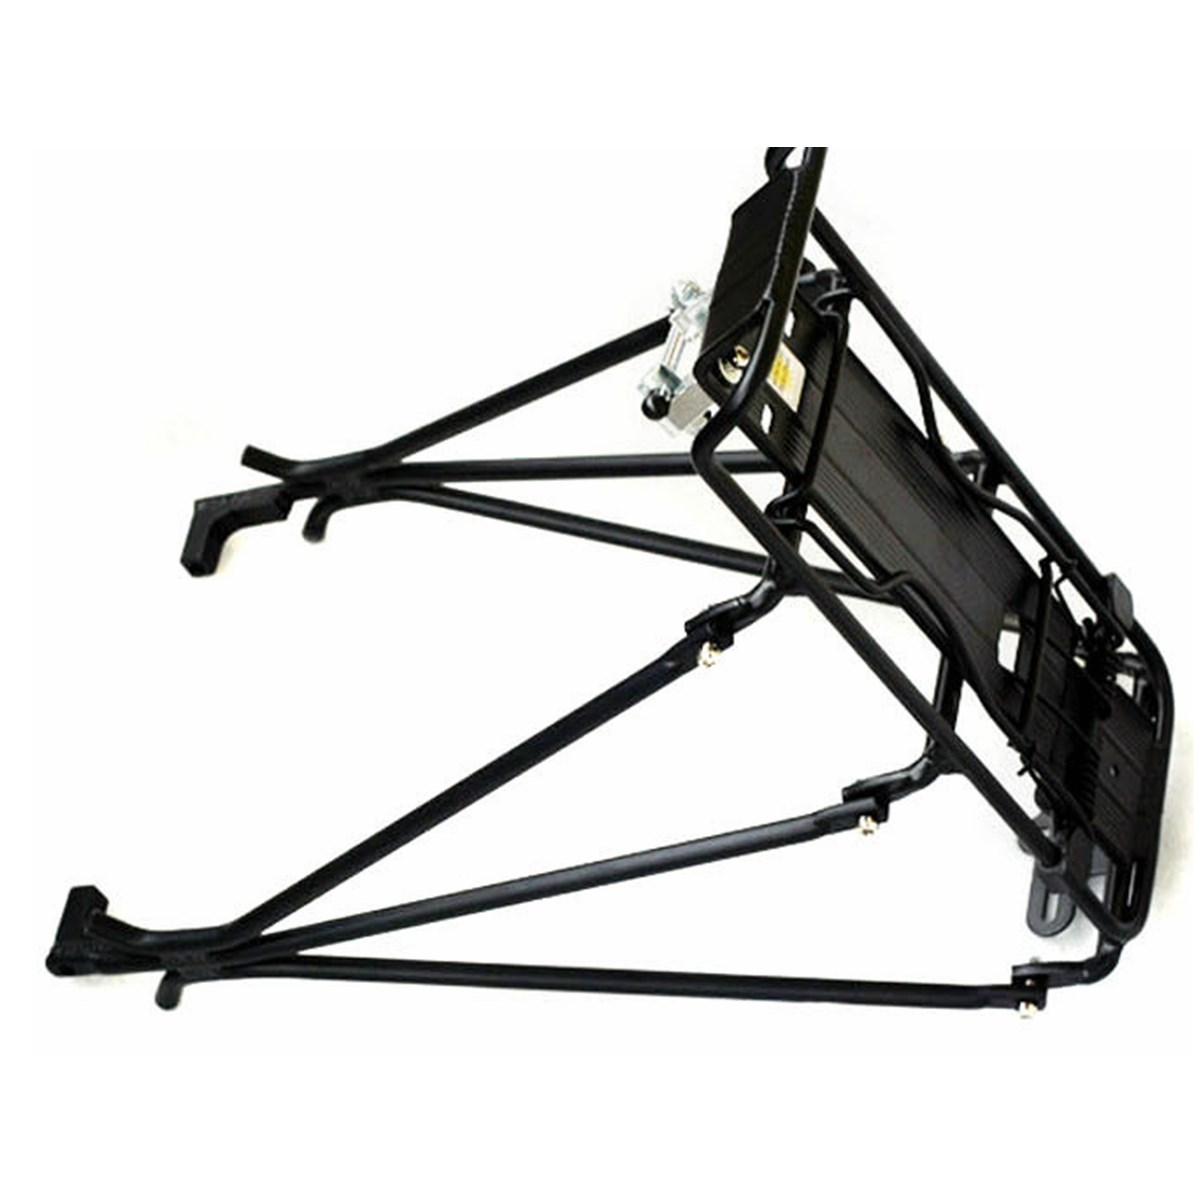 Aluminum Alloy MTB Bike Bicycle Rack Carrier Panniers Bag Carrier Adjustable Rear Seat Luggage Cycling Shelf Bracket<br><br>Aliexpress